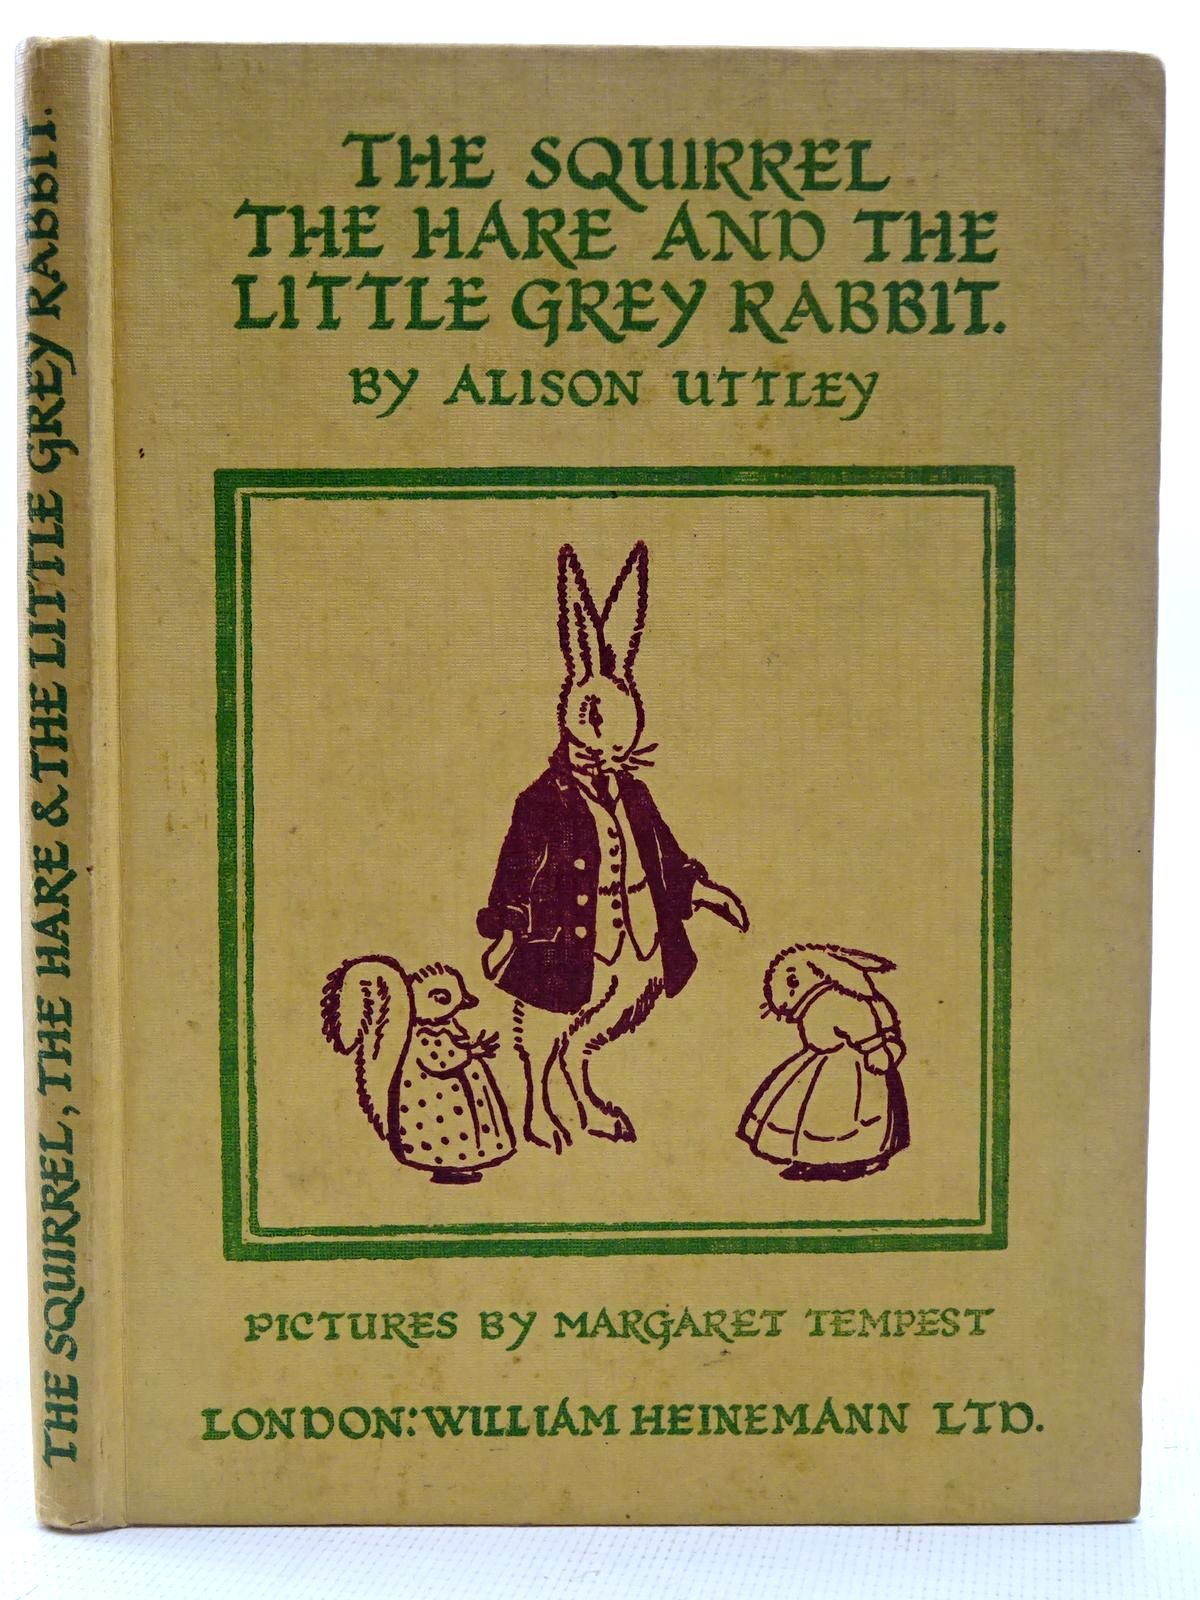 Photo of THE SQUIRREL, THE HARE AND THE LITTLE GREY RABBIT written by Uttley, Alison illustrated by Tempest, Margaret published by William Heinemann Ltd. (STOCK CODE: 2126416)  for sale by Stella & Rose's Books